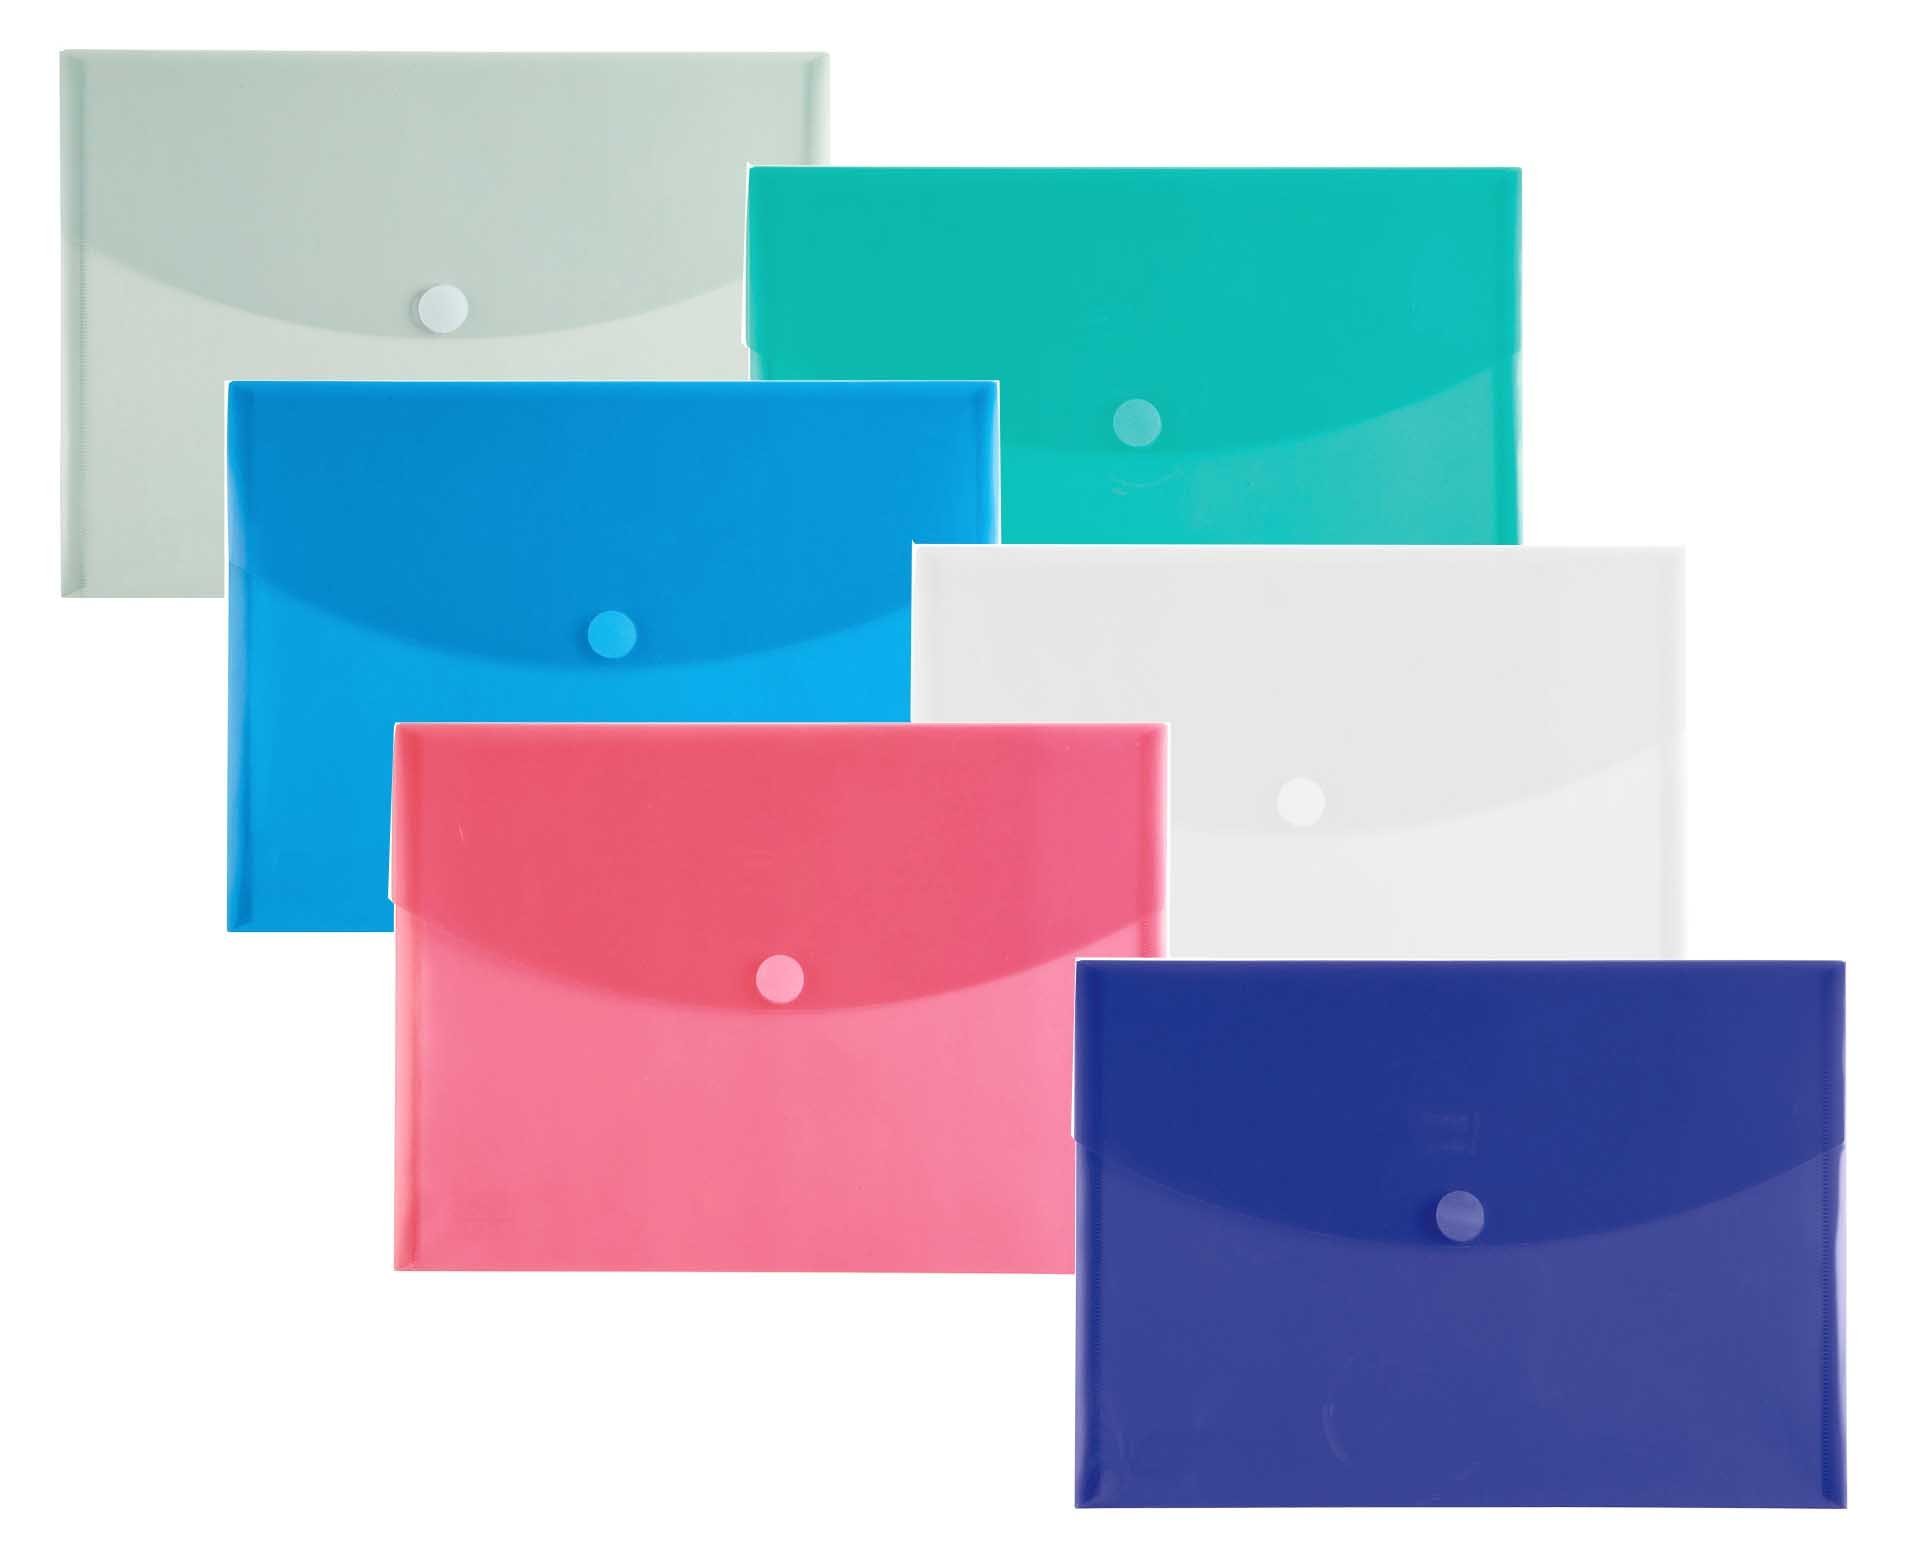 Filexec 50037-1720 1720, Poly Envelope, Velcro Closure, Letter Size, Set of 12 in 6 Assorted Colors, 2 Each Smoke, Blue, Red, Clear, Purple, Green